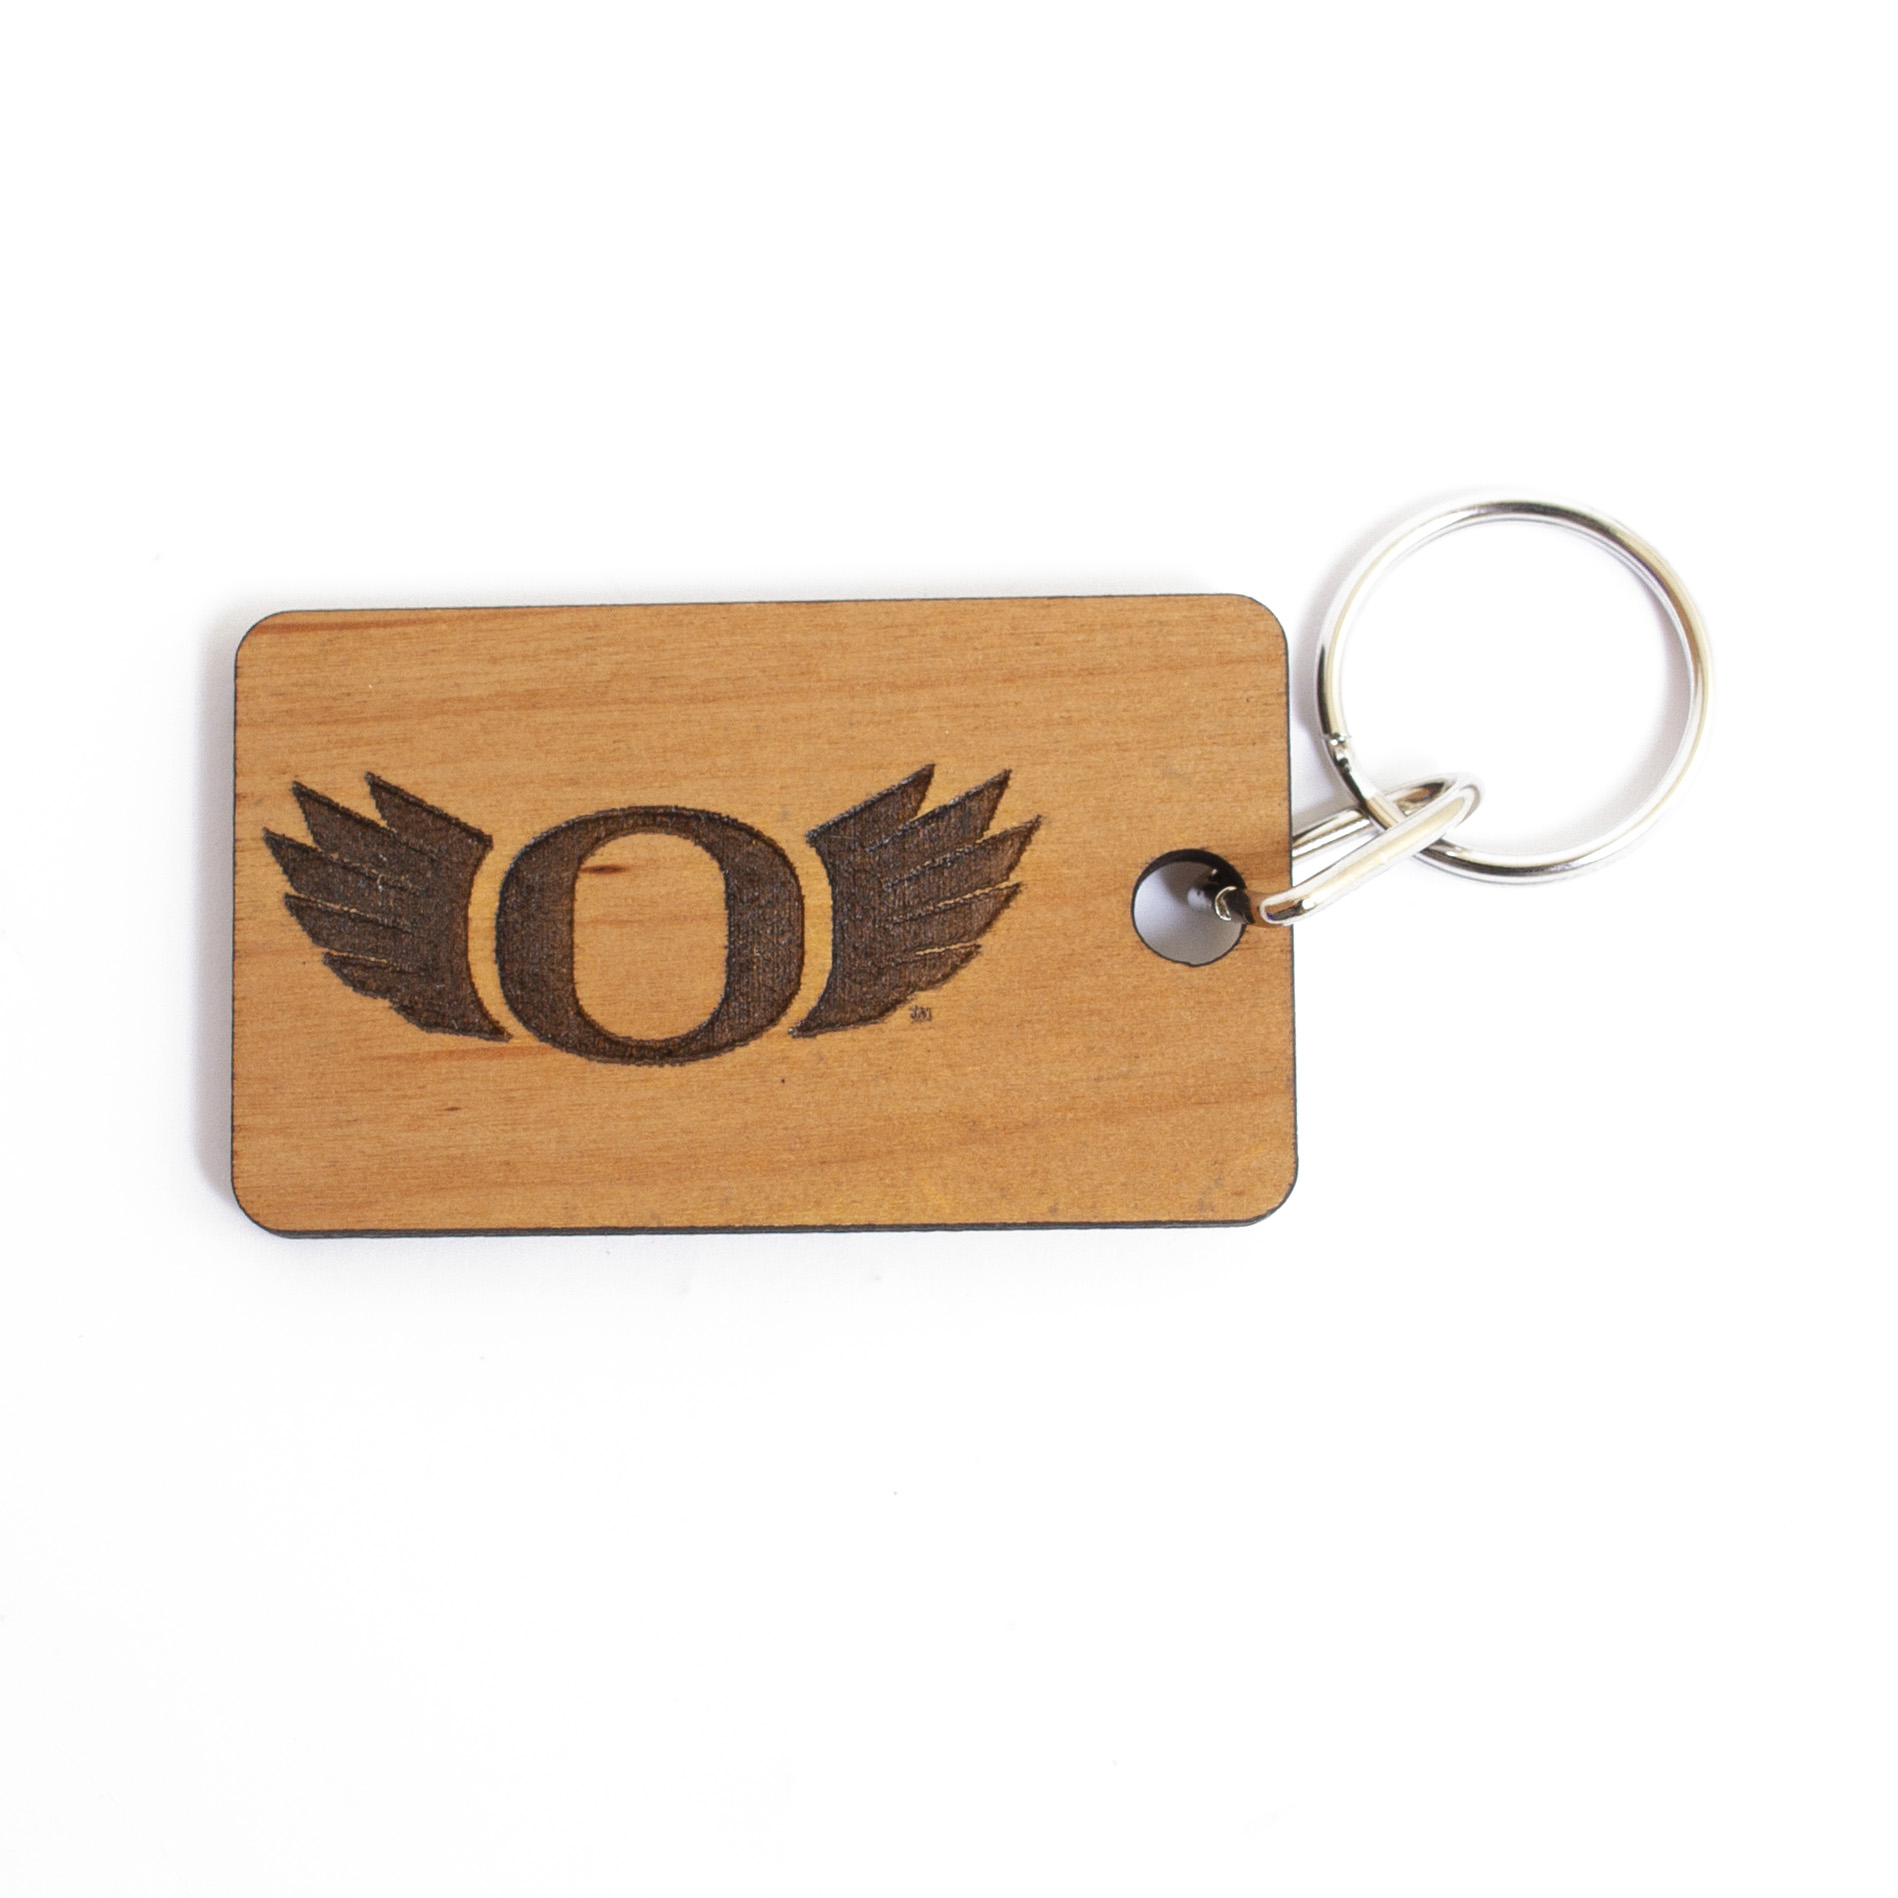 Classic Oregon O, Wood, Key Chain